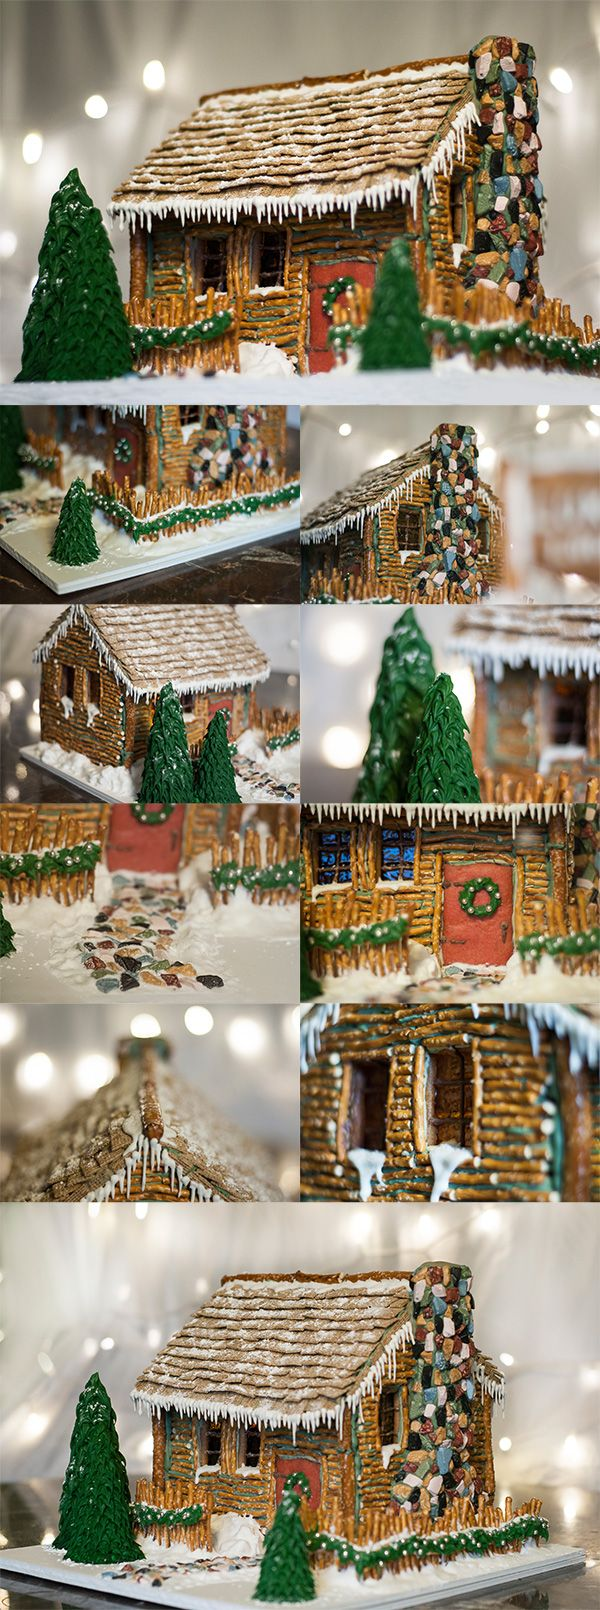 """Christmas Log Cabin"" by Kaitlin L."